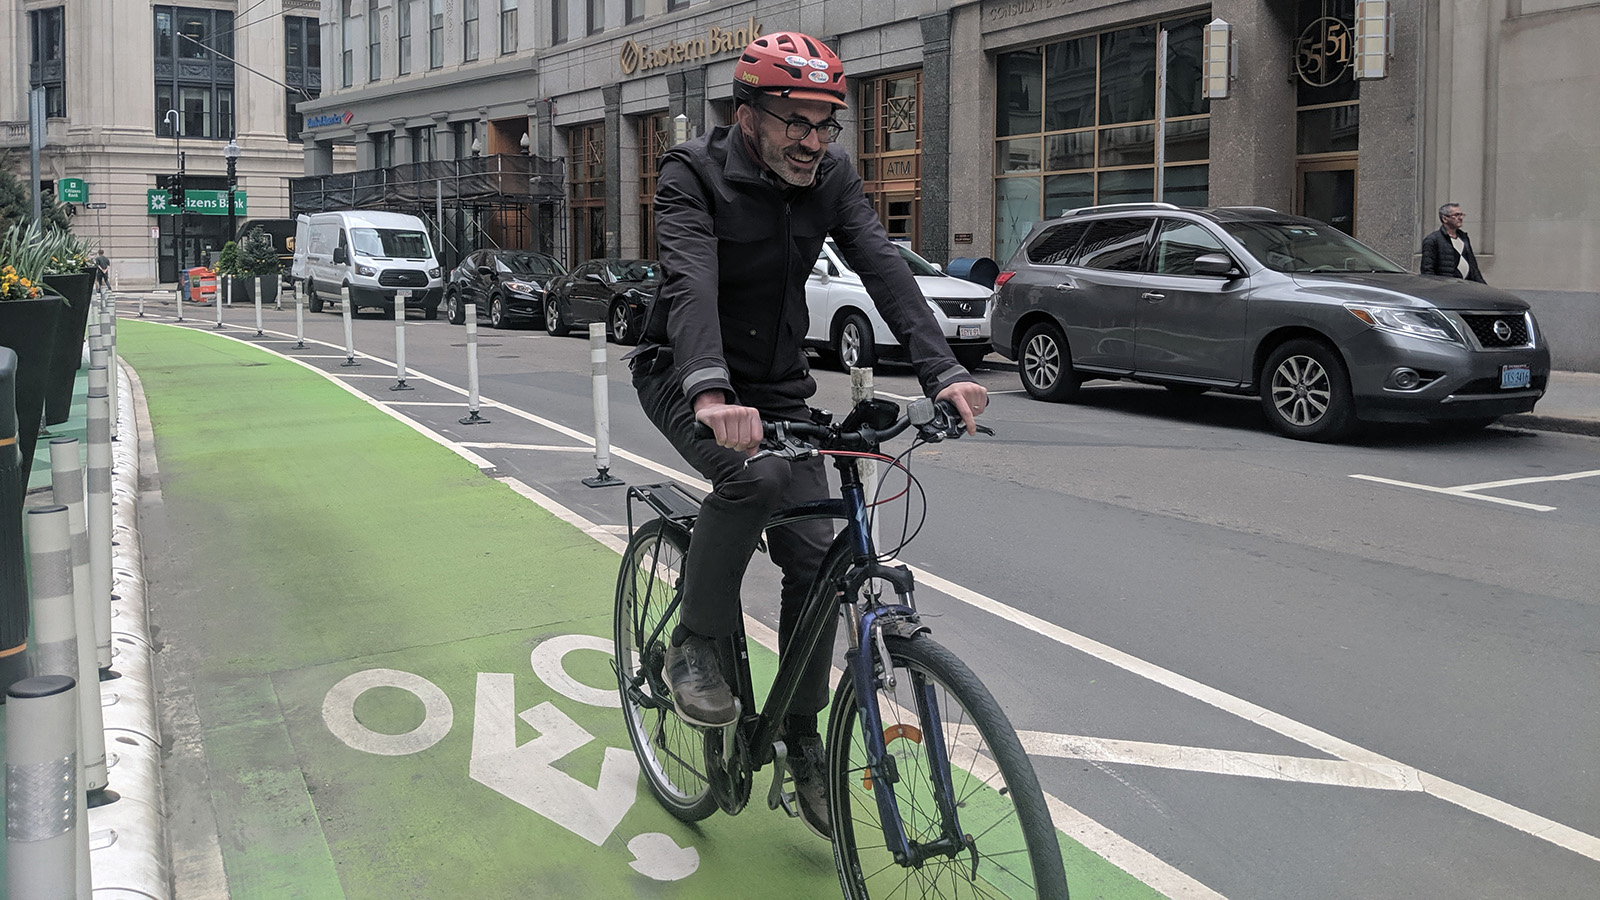 <h4>TO GET TO ZERO CARBON: DRIVE LESS, LIVE MORE</h4><h5>Our goal is to double the number of people who travel on foot, bike or public transit by 2030.</h5><em>Jennifer Newman</em>